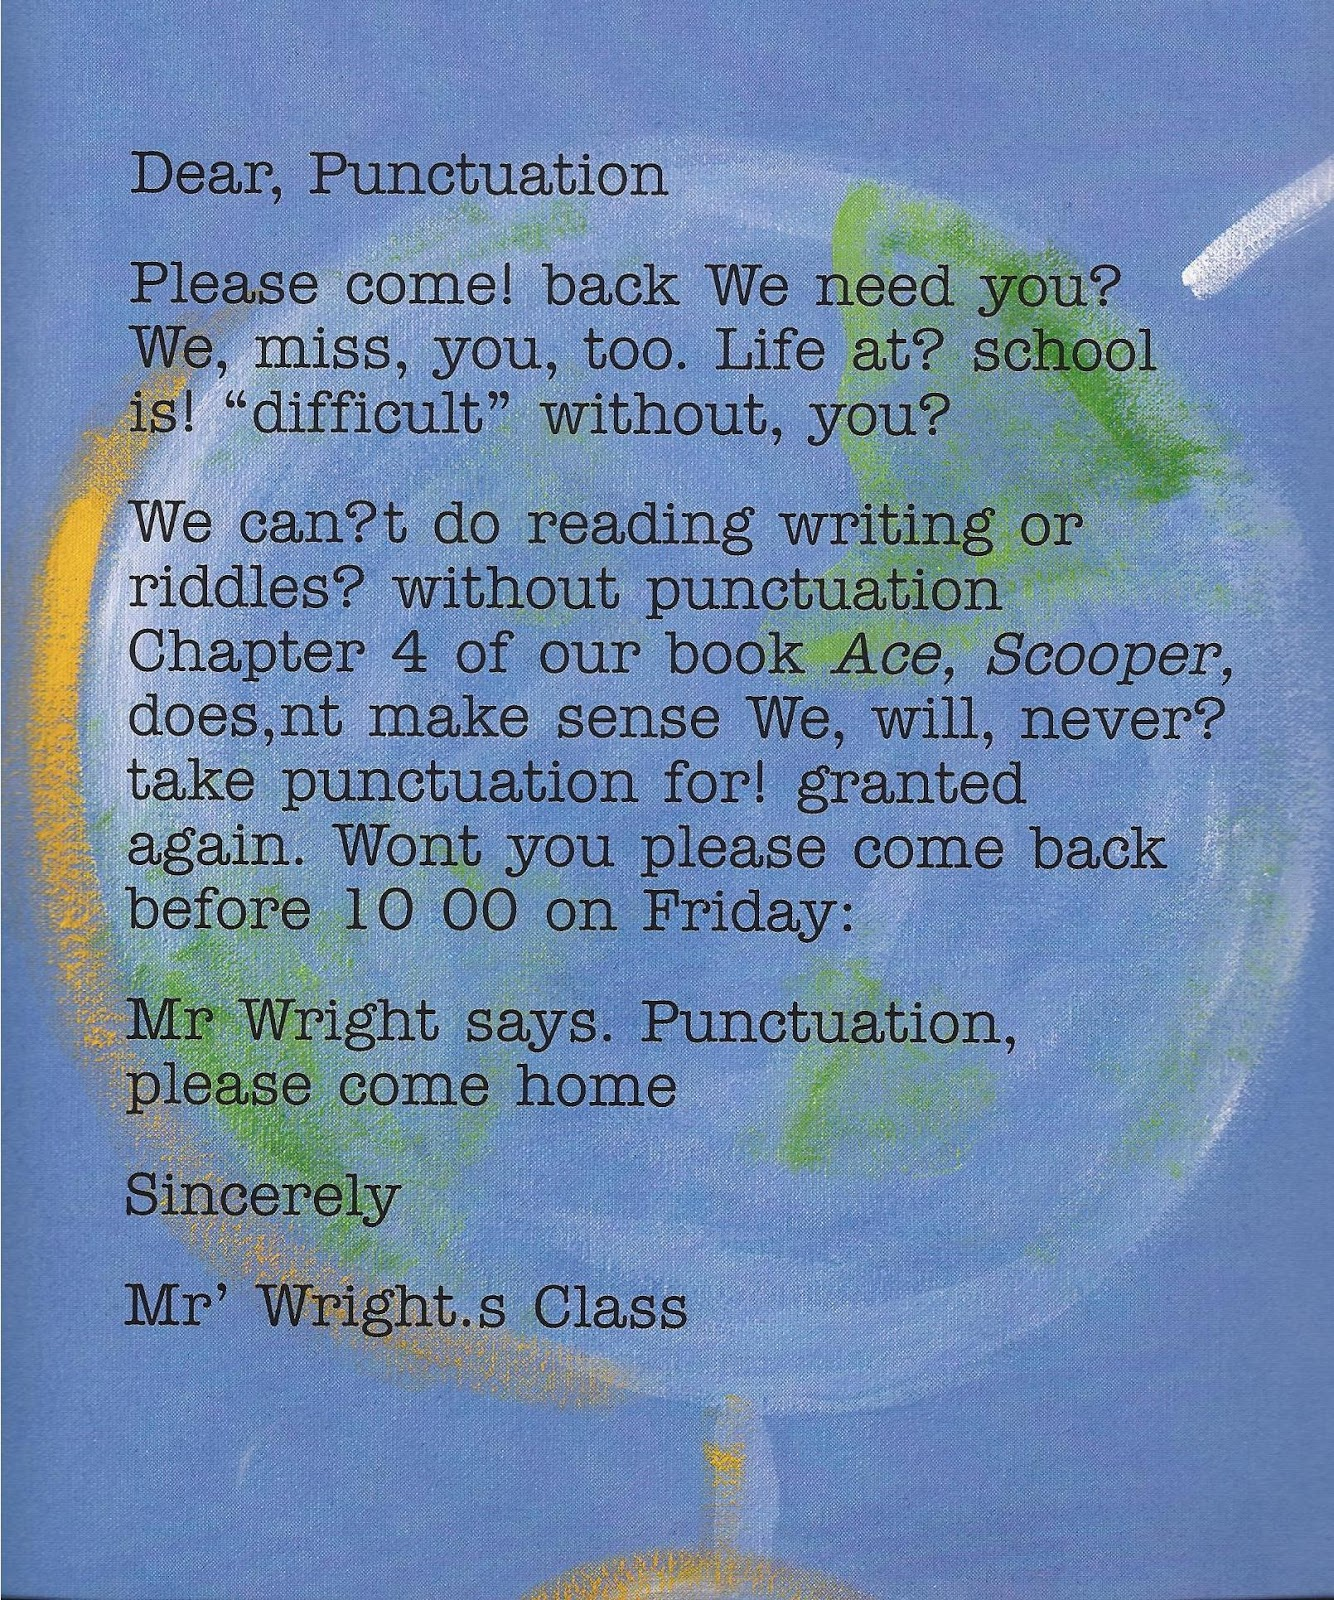 What punctuation would you use?